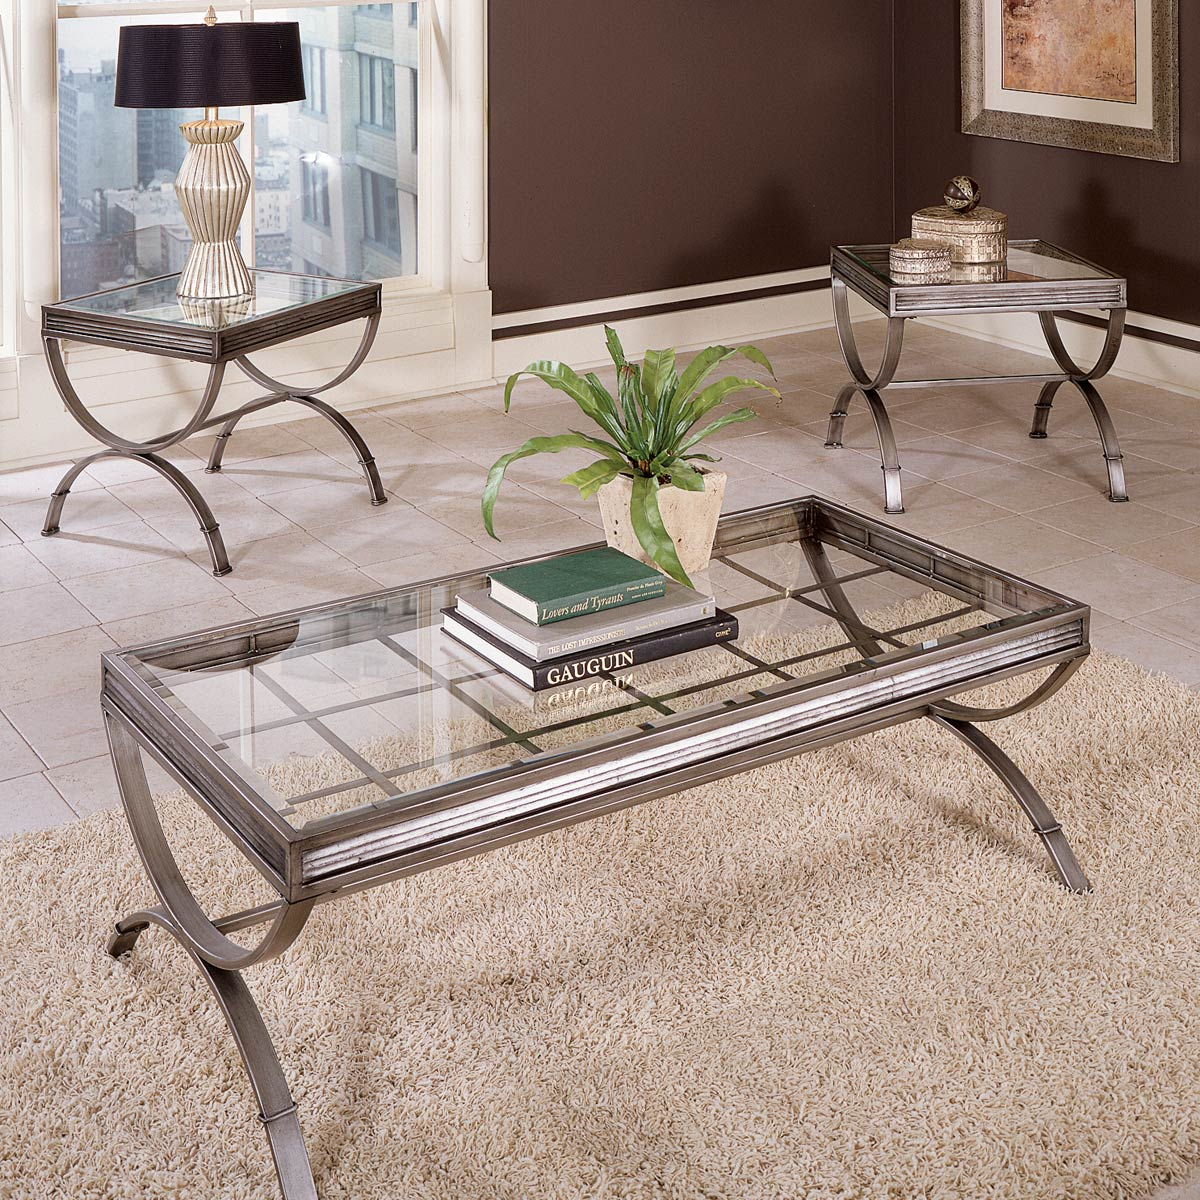 - Emerson 3 Piece Coffee Table Set - Glass, Metal, Brushed Nickel